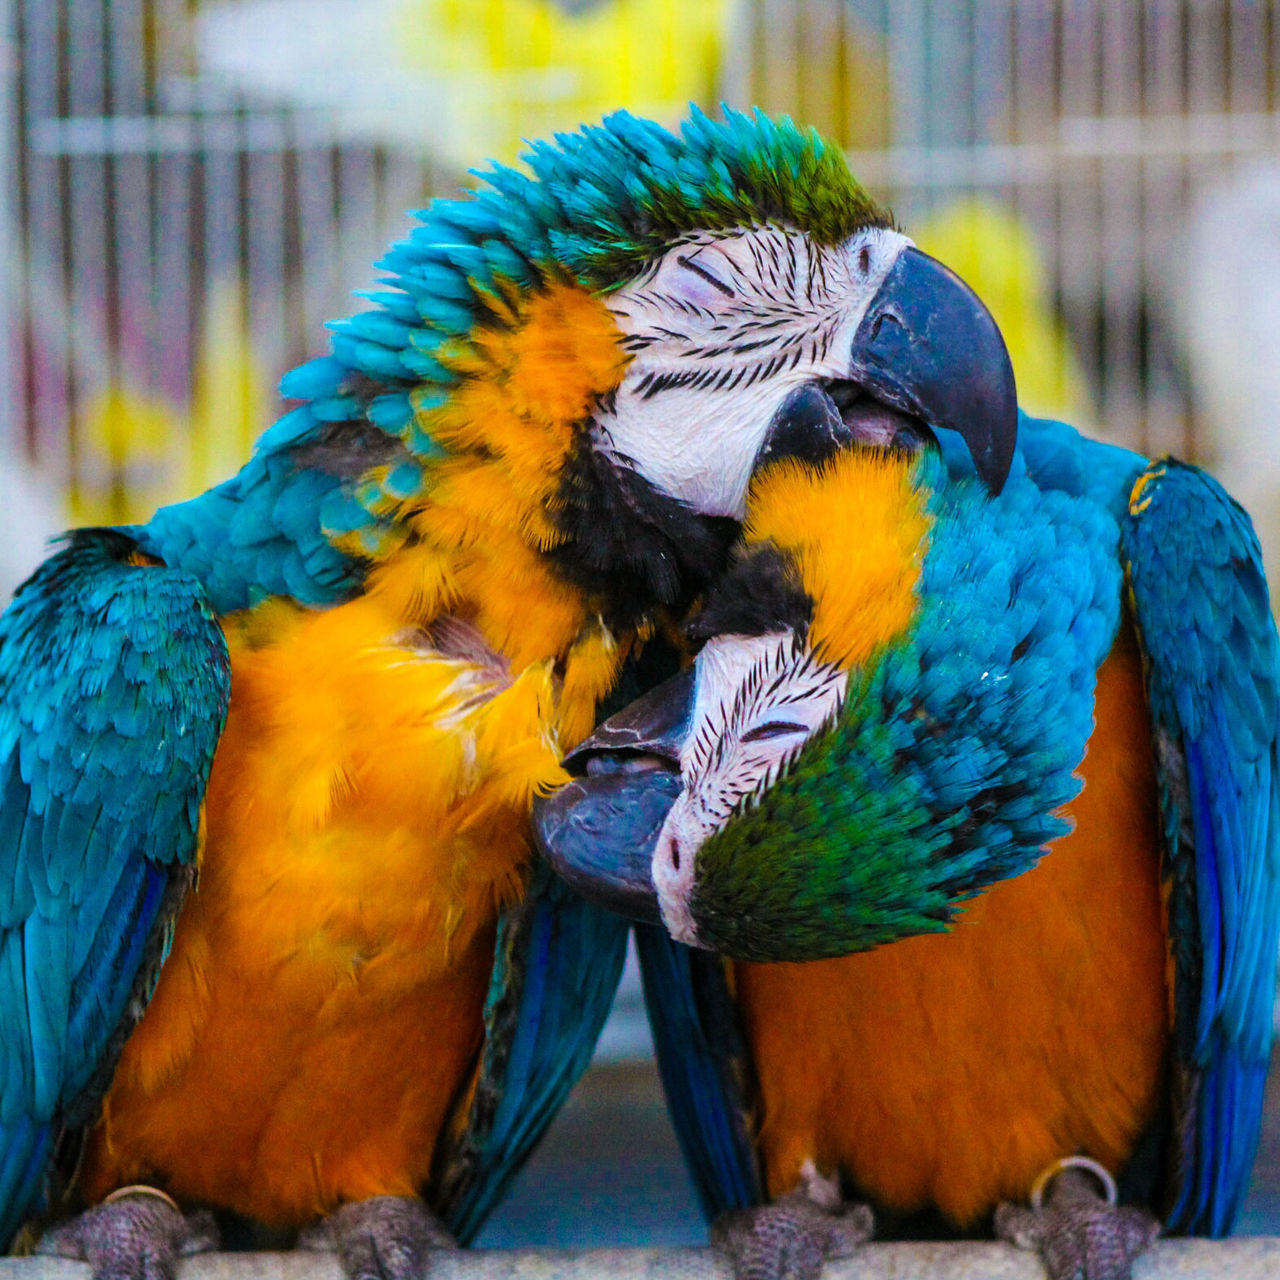 Exploring Style Animal Themes Bird Animals In The Wild Animal Wildlife Close-up Gold And Blue Macaw Day Beauty In Nature Parrot Nature Macaw Outdoors No People Bright Colours